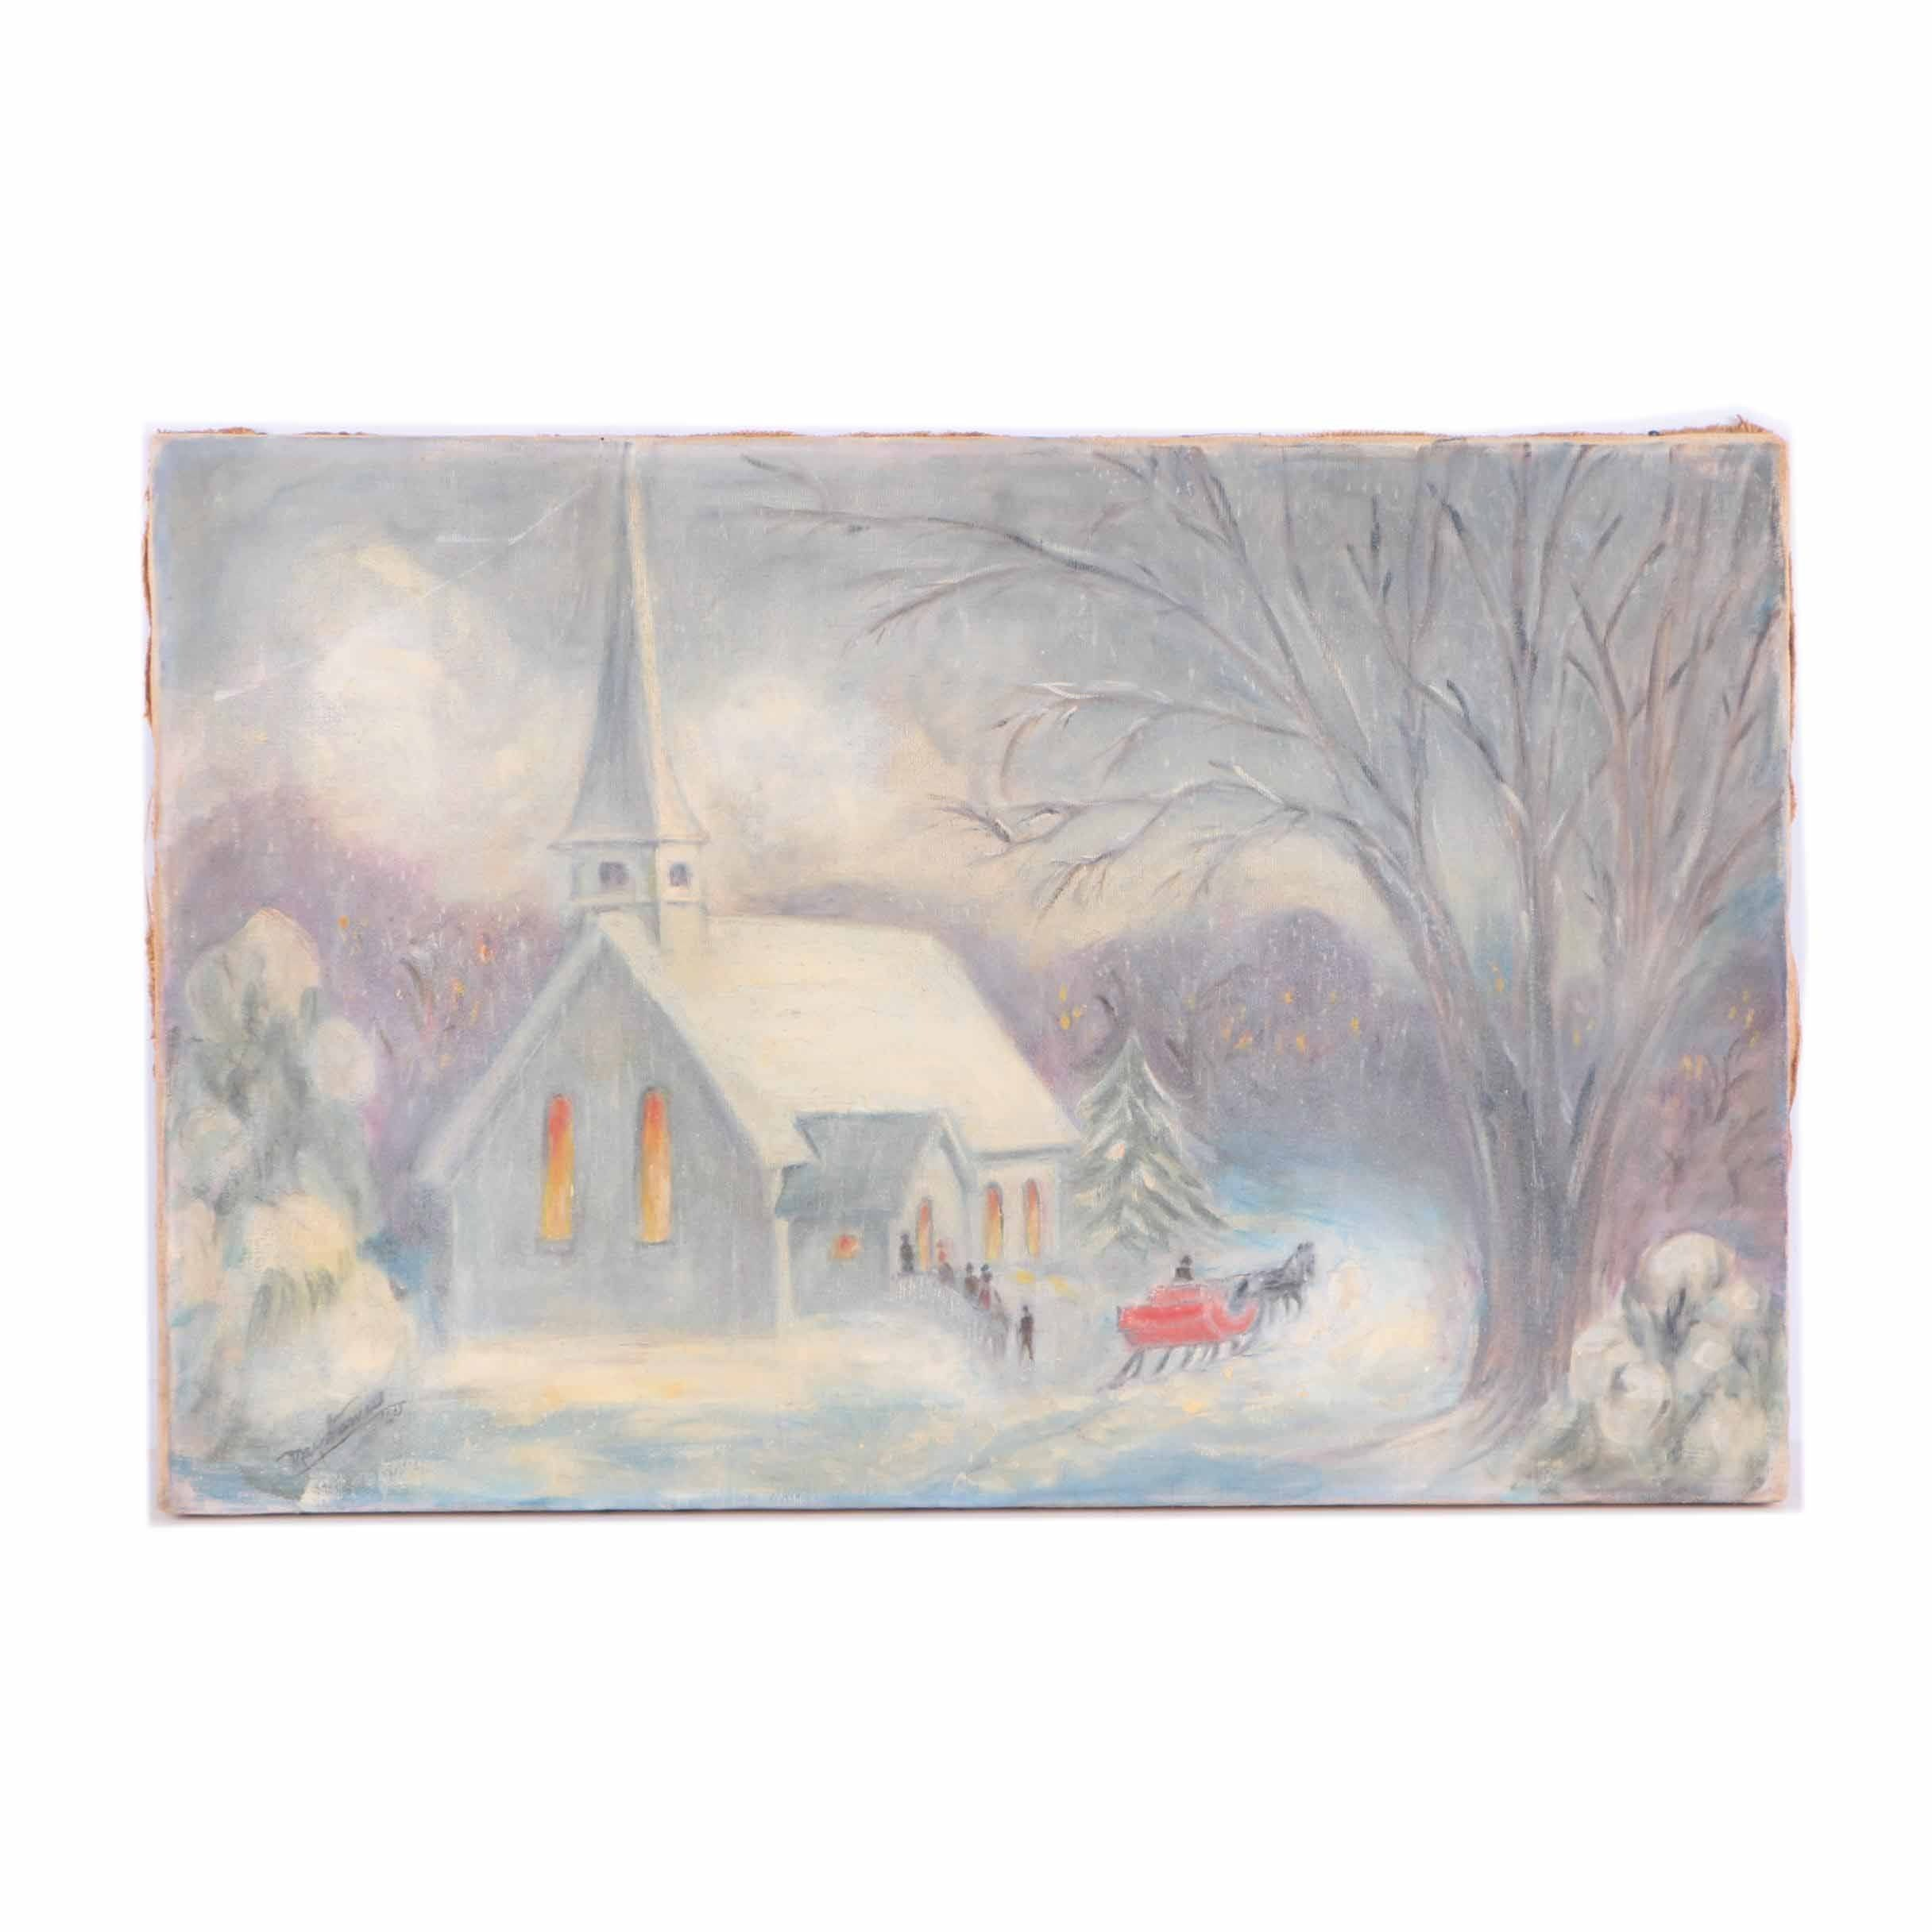 May Starnes 1960 Oil Painting on Canvas of Winter Scene with Church and Sleigh